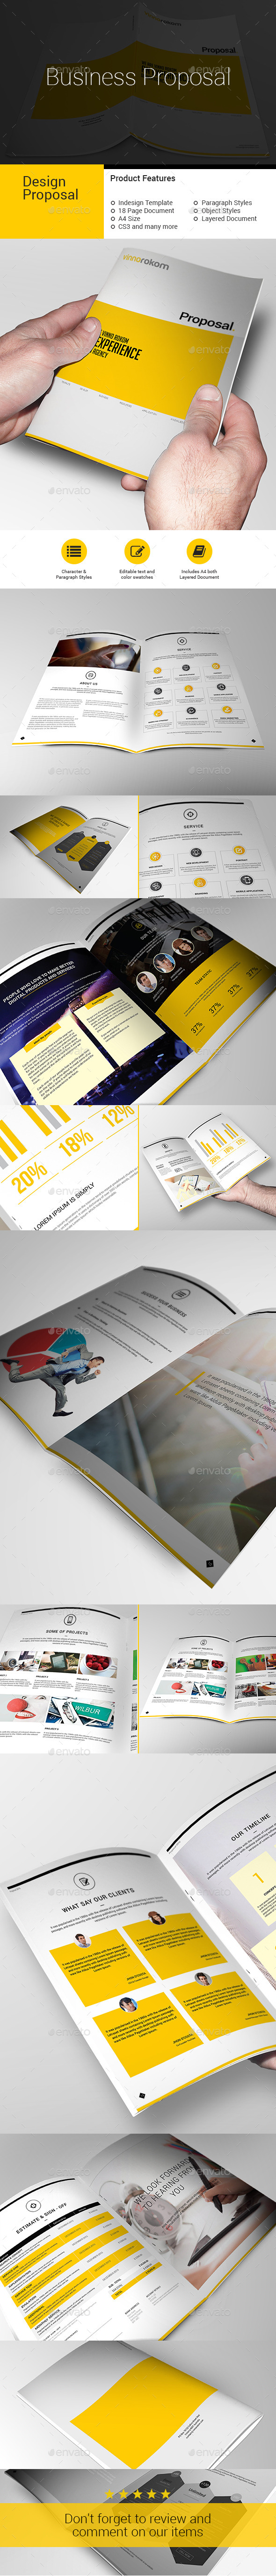 Business PROPOSAL - Stationery Print Templates